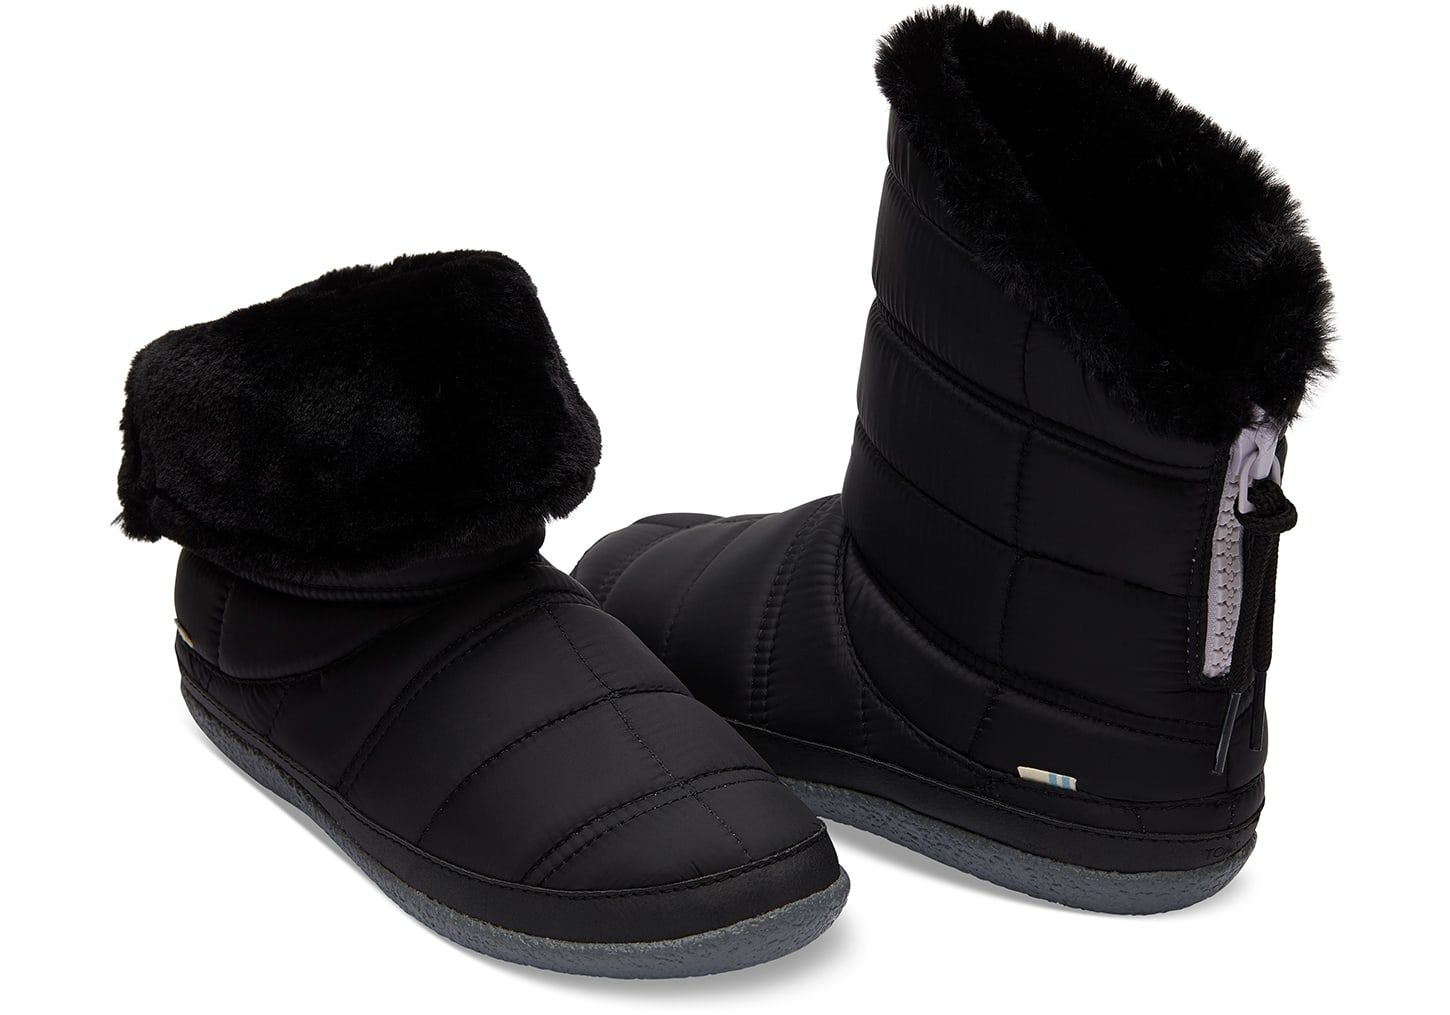 dd6af8576 Black Quilted Women's Inez Booties | Candis' Want List | Black quilt ...